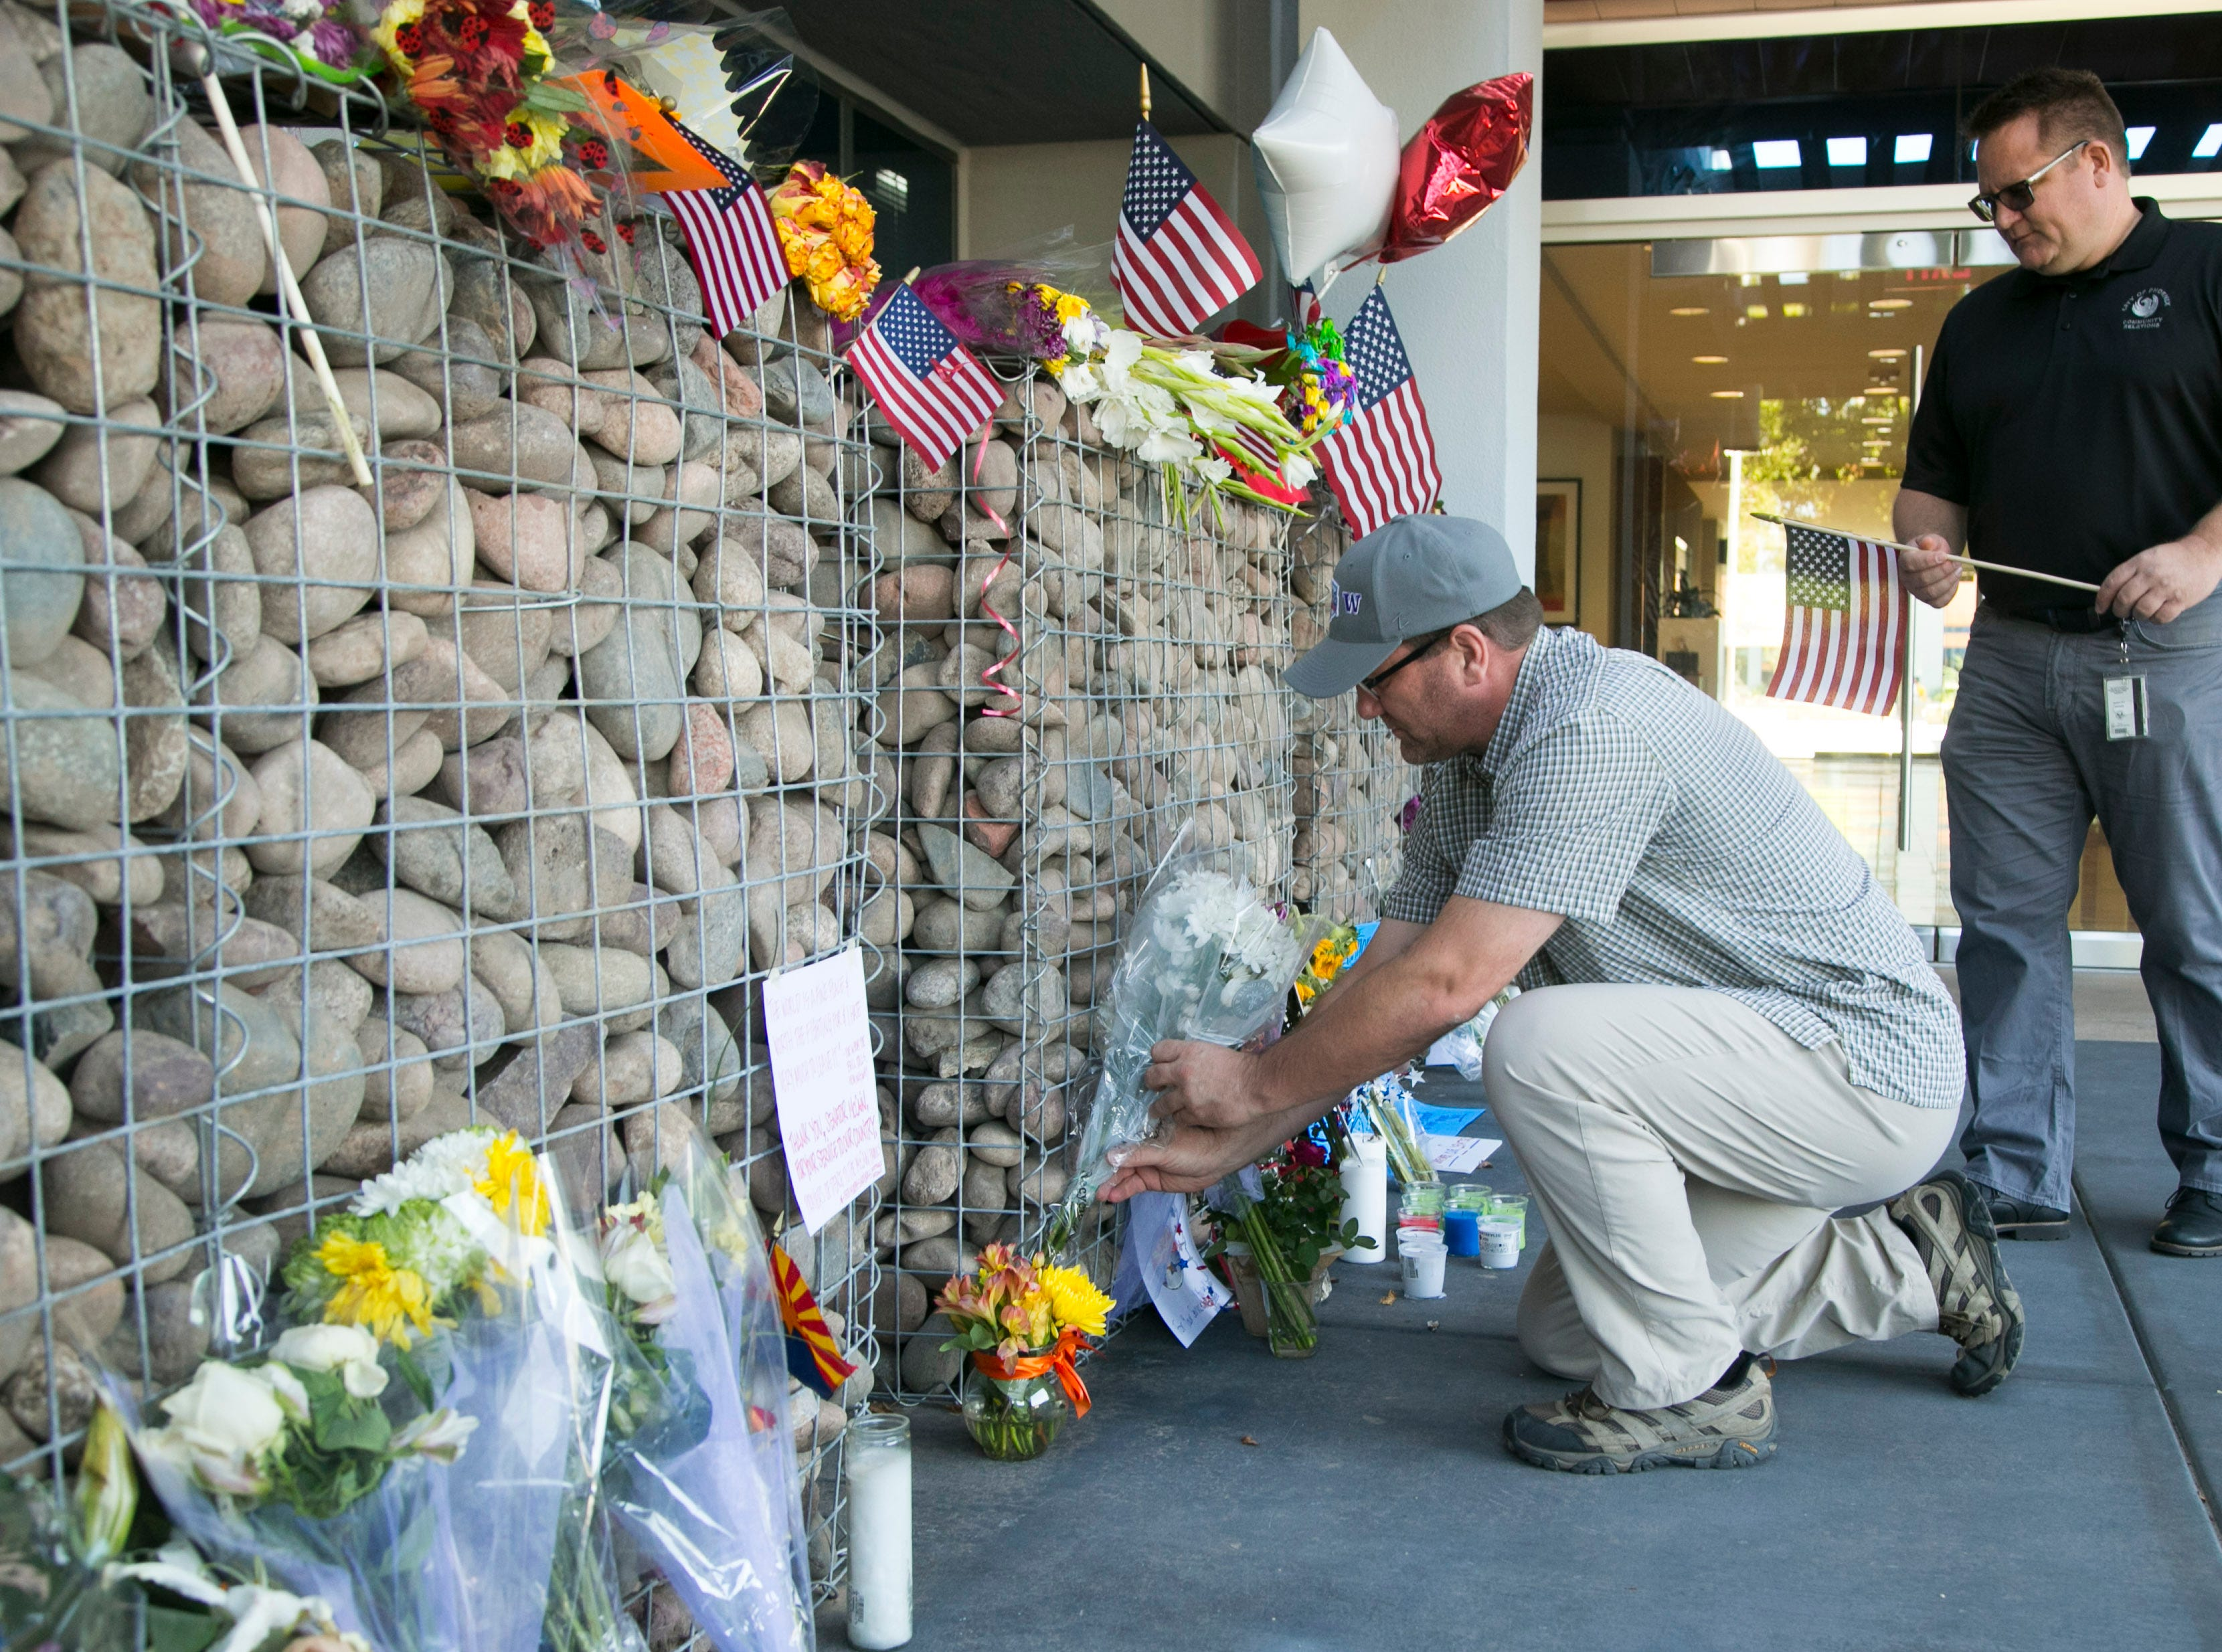 James Olsen (bottom) of Columbia, S.C., and his brother, Ted Olsen of Phoenix, place flowers and an American flag at a memorial for Sen. John McCain at McCain's office in Phoenix on Monday morning, August 27, 2018.